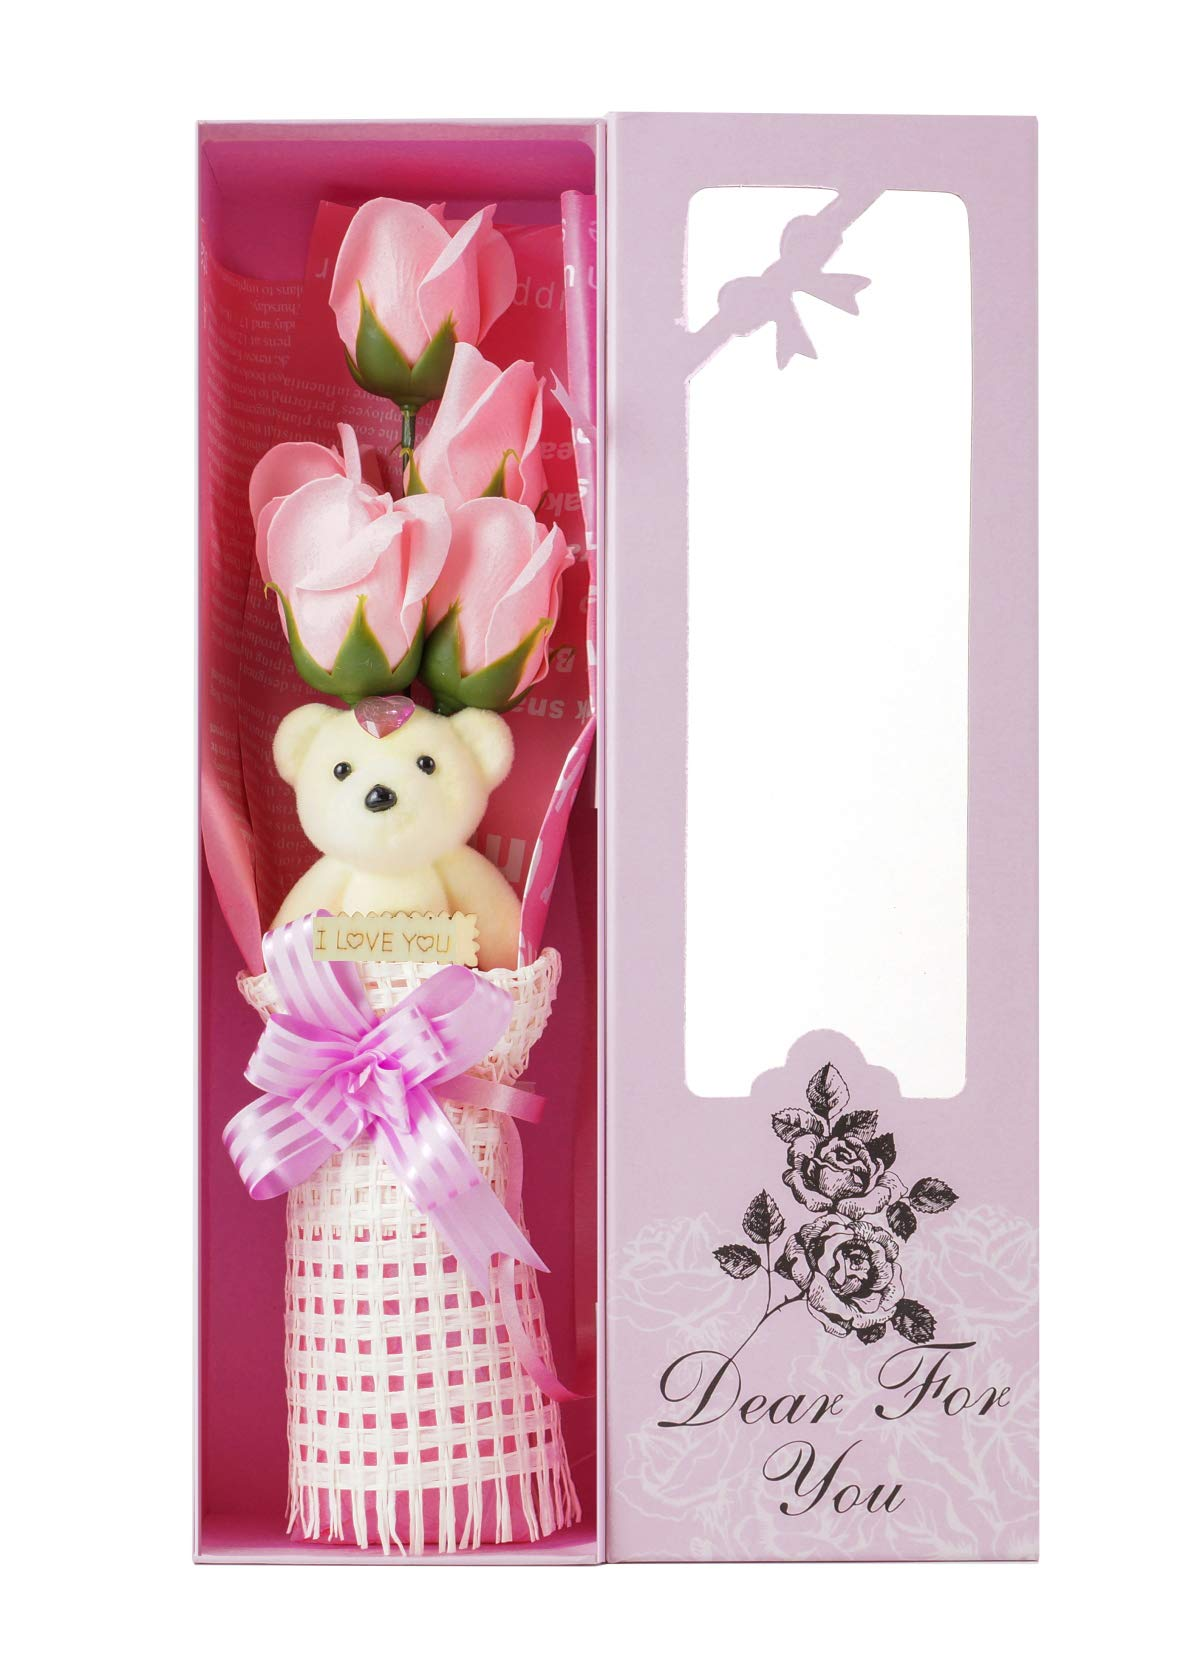 Adabele-Gifts-I-Love-You-Flower-Bouquet-Scented-Soap-Roses-with-Cute-Teddy-Bear-Women-Girls-Anniversary-Birthday-Mothers-Day-Valentines-Gift